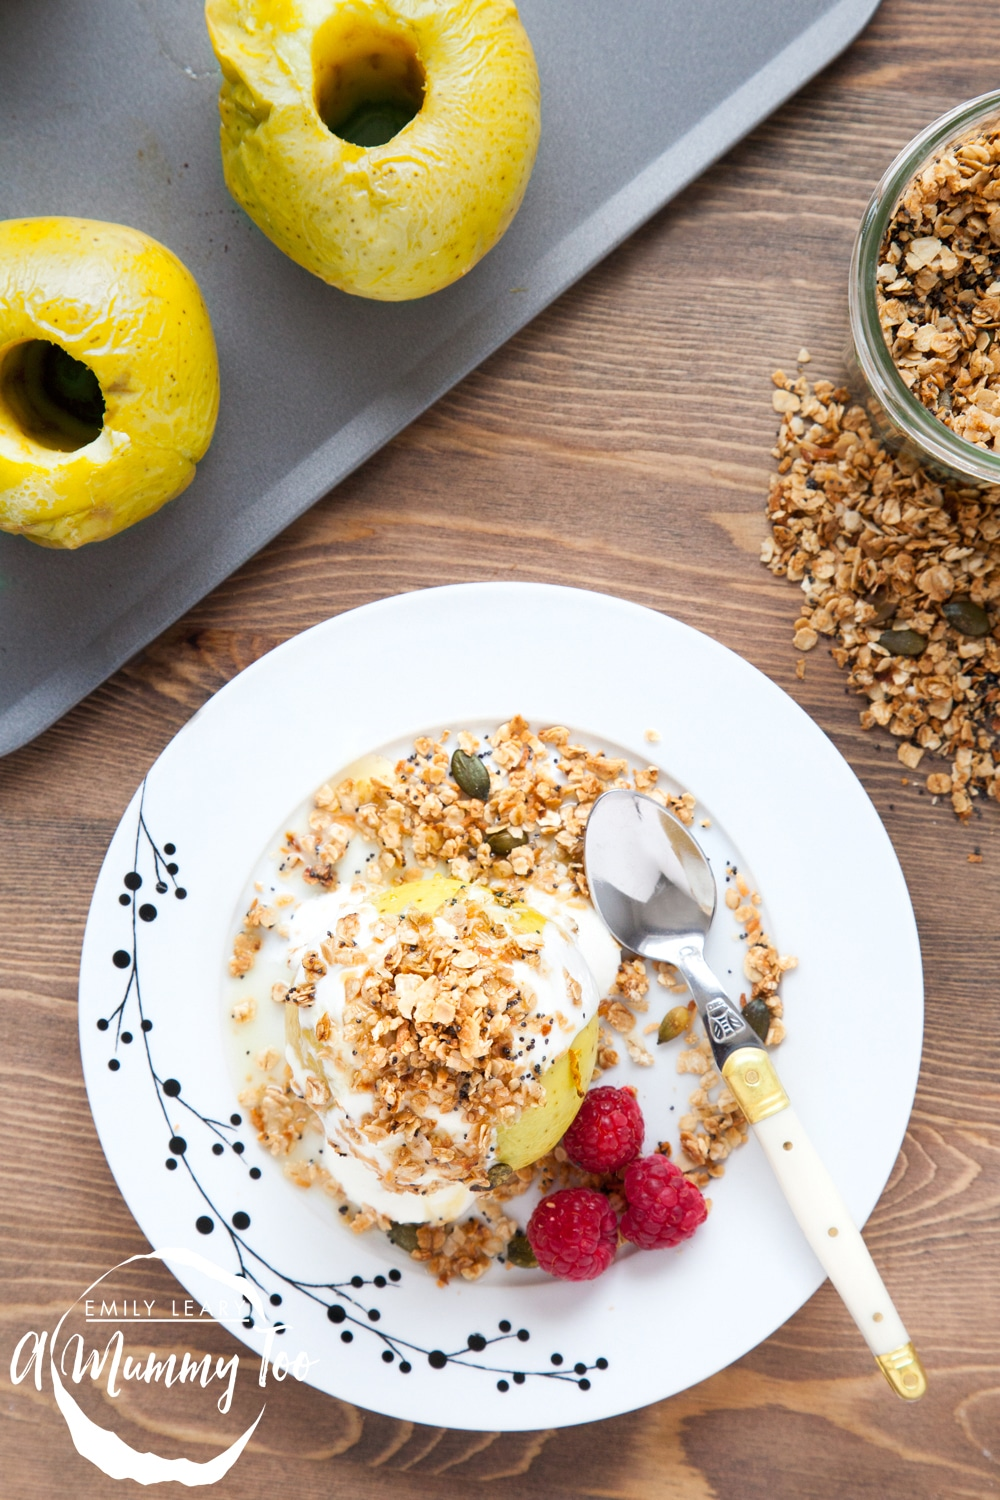 Assemble your baked Bramley apples with yoghurt and granola